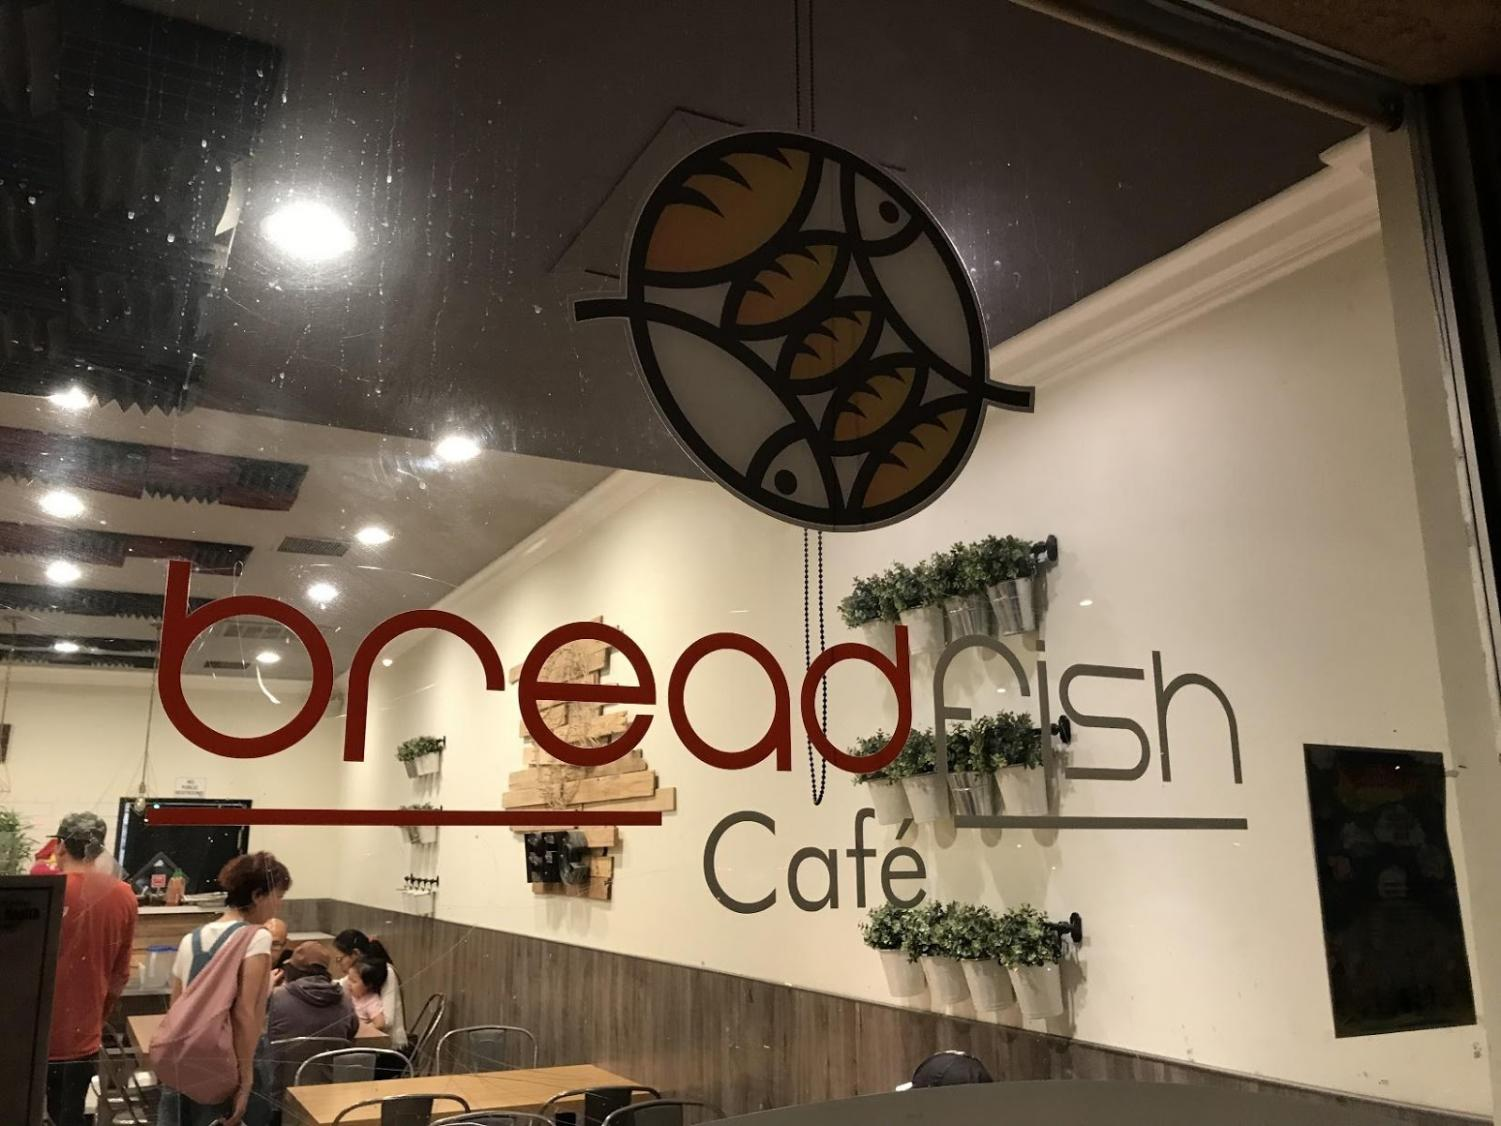 Family owned restaurant Breadfish Cafe serves classic Taiwanese snacks and drinks, including popcorn chicken and tea.